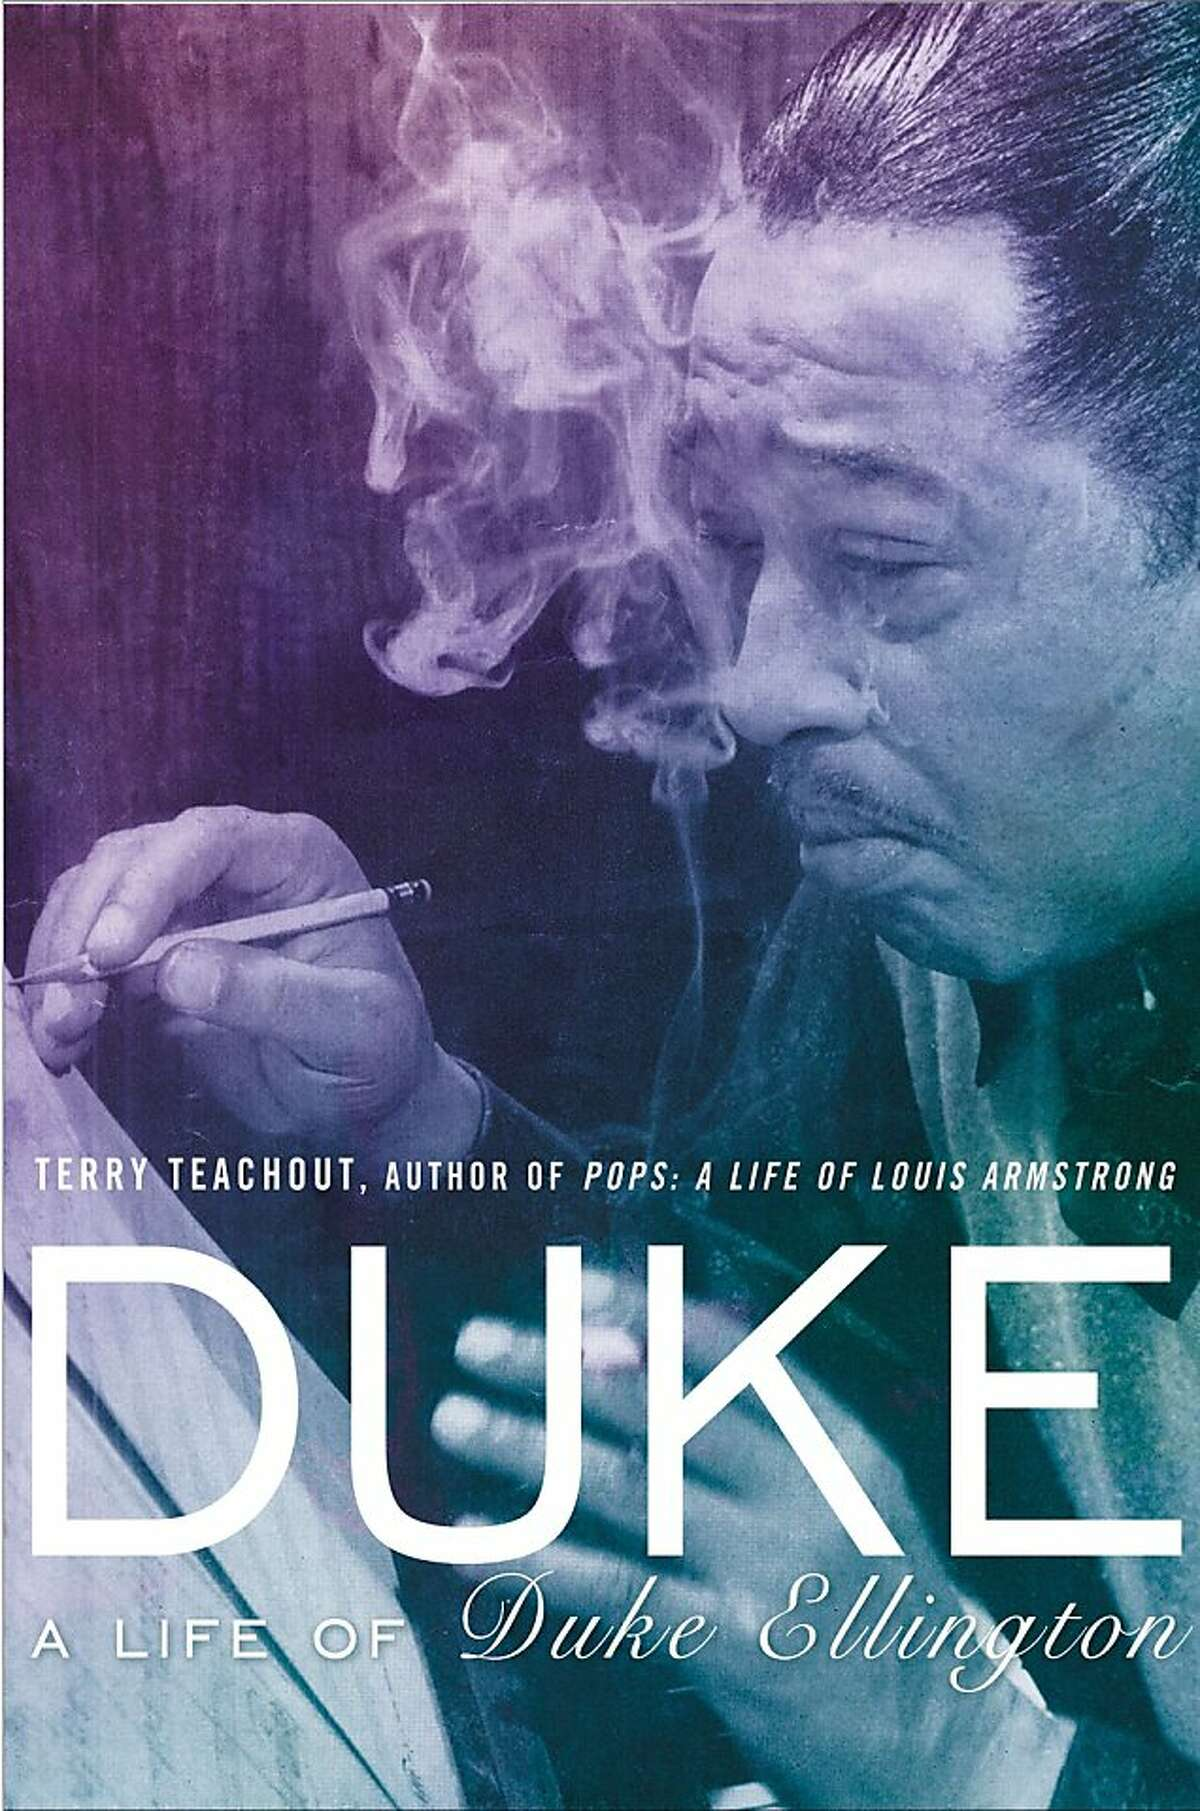 Duke: A Life of Duke Ellington, by Terry Teachout